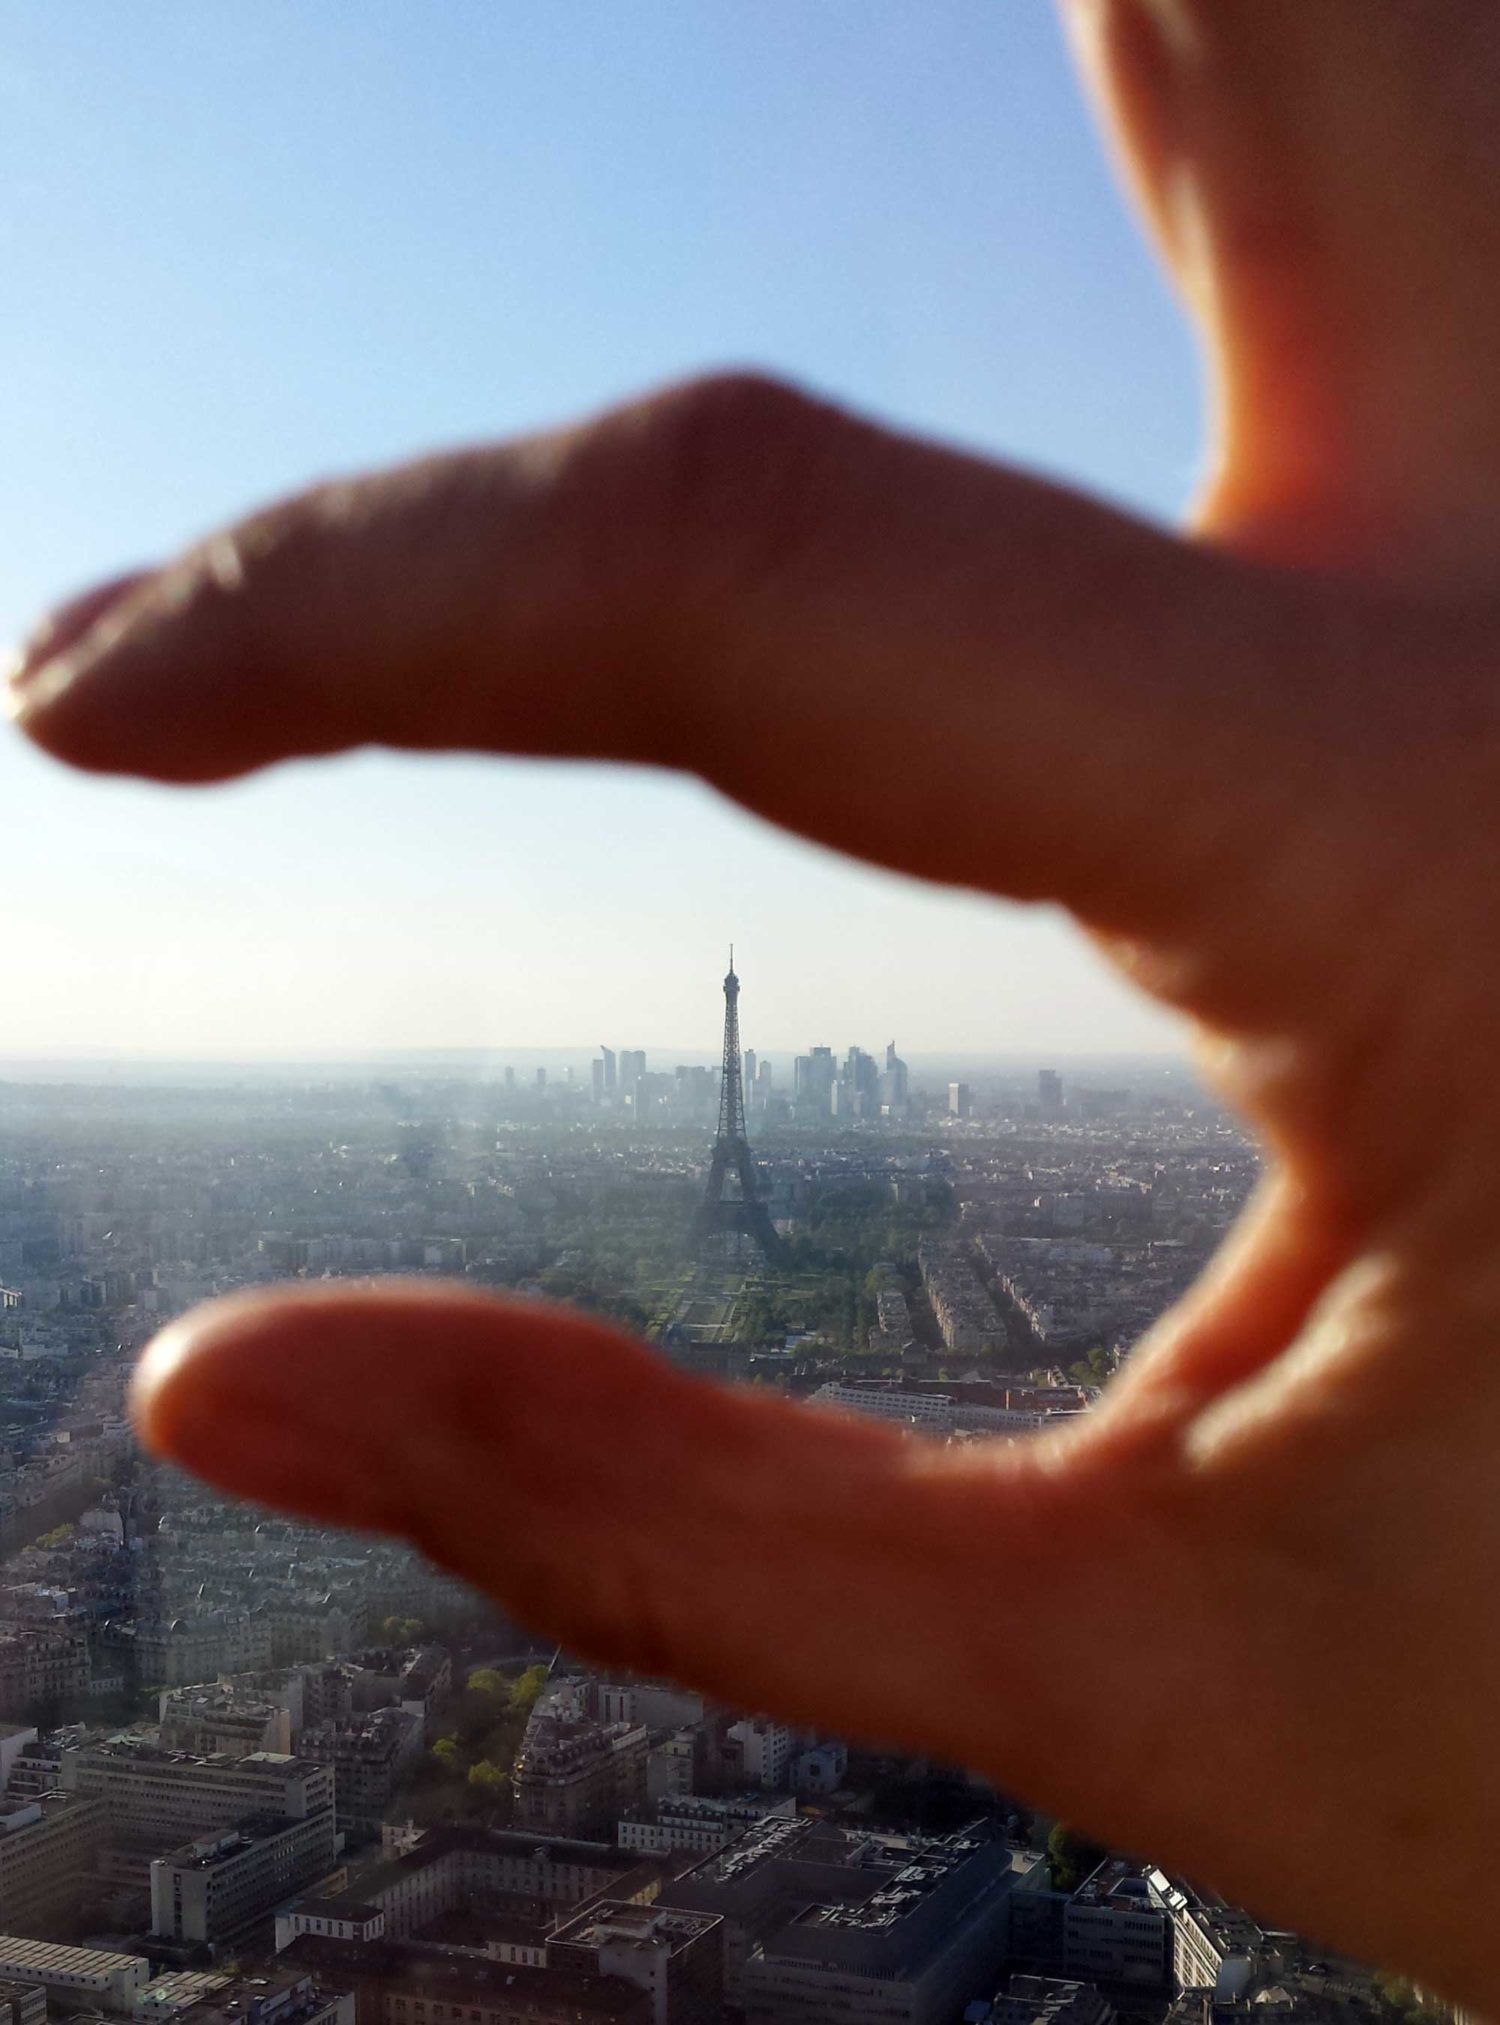 The Eiffel Tower from the Montparnasse Tower